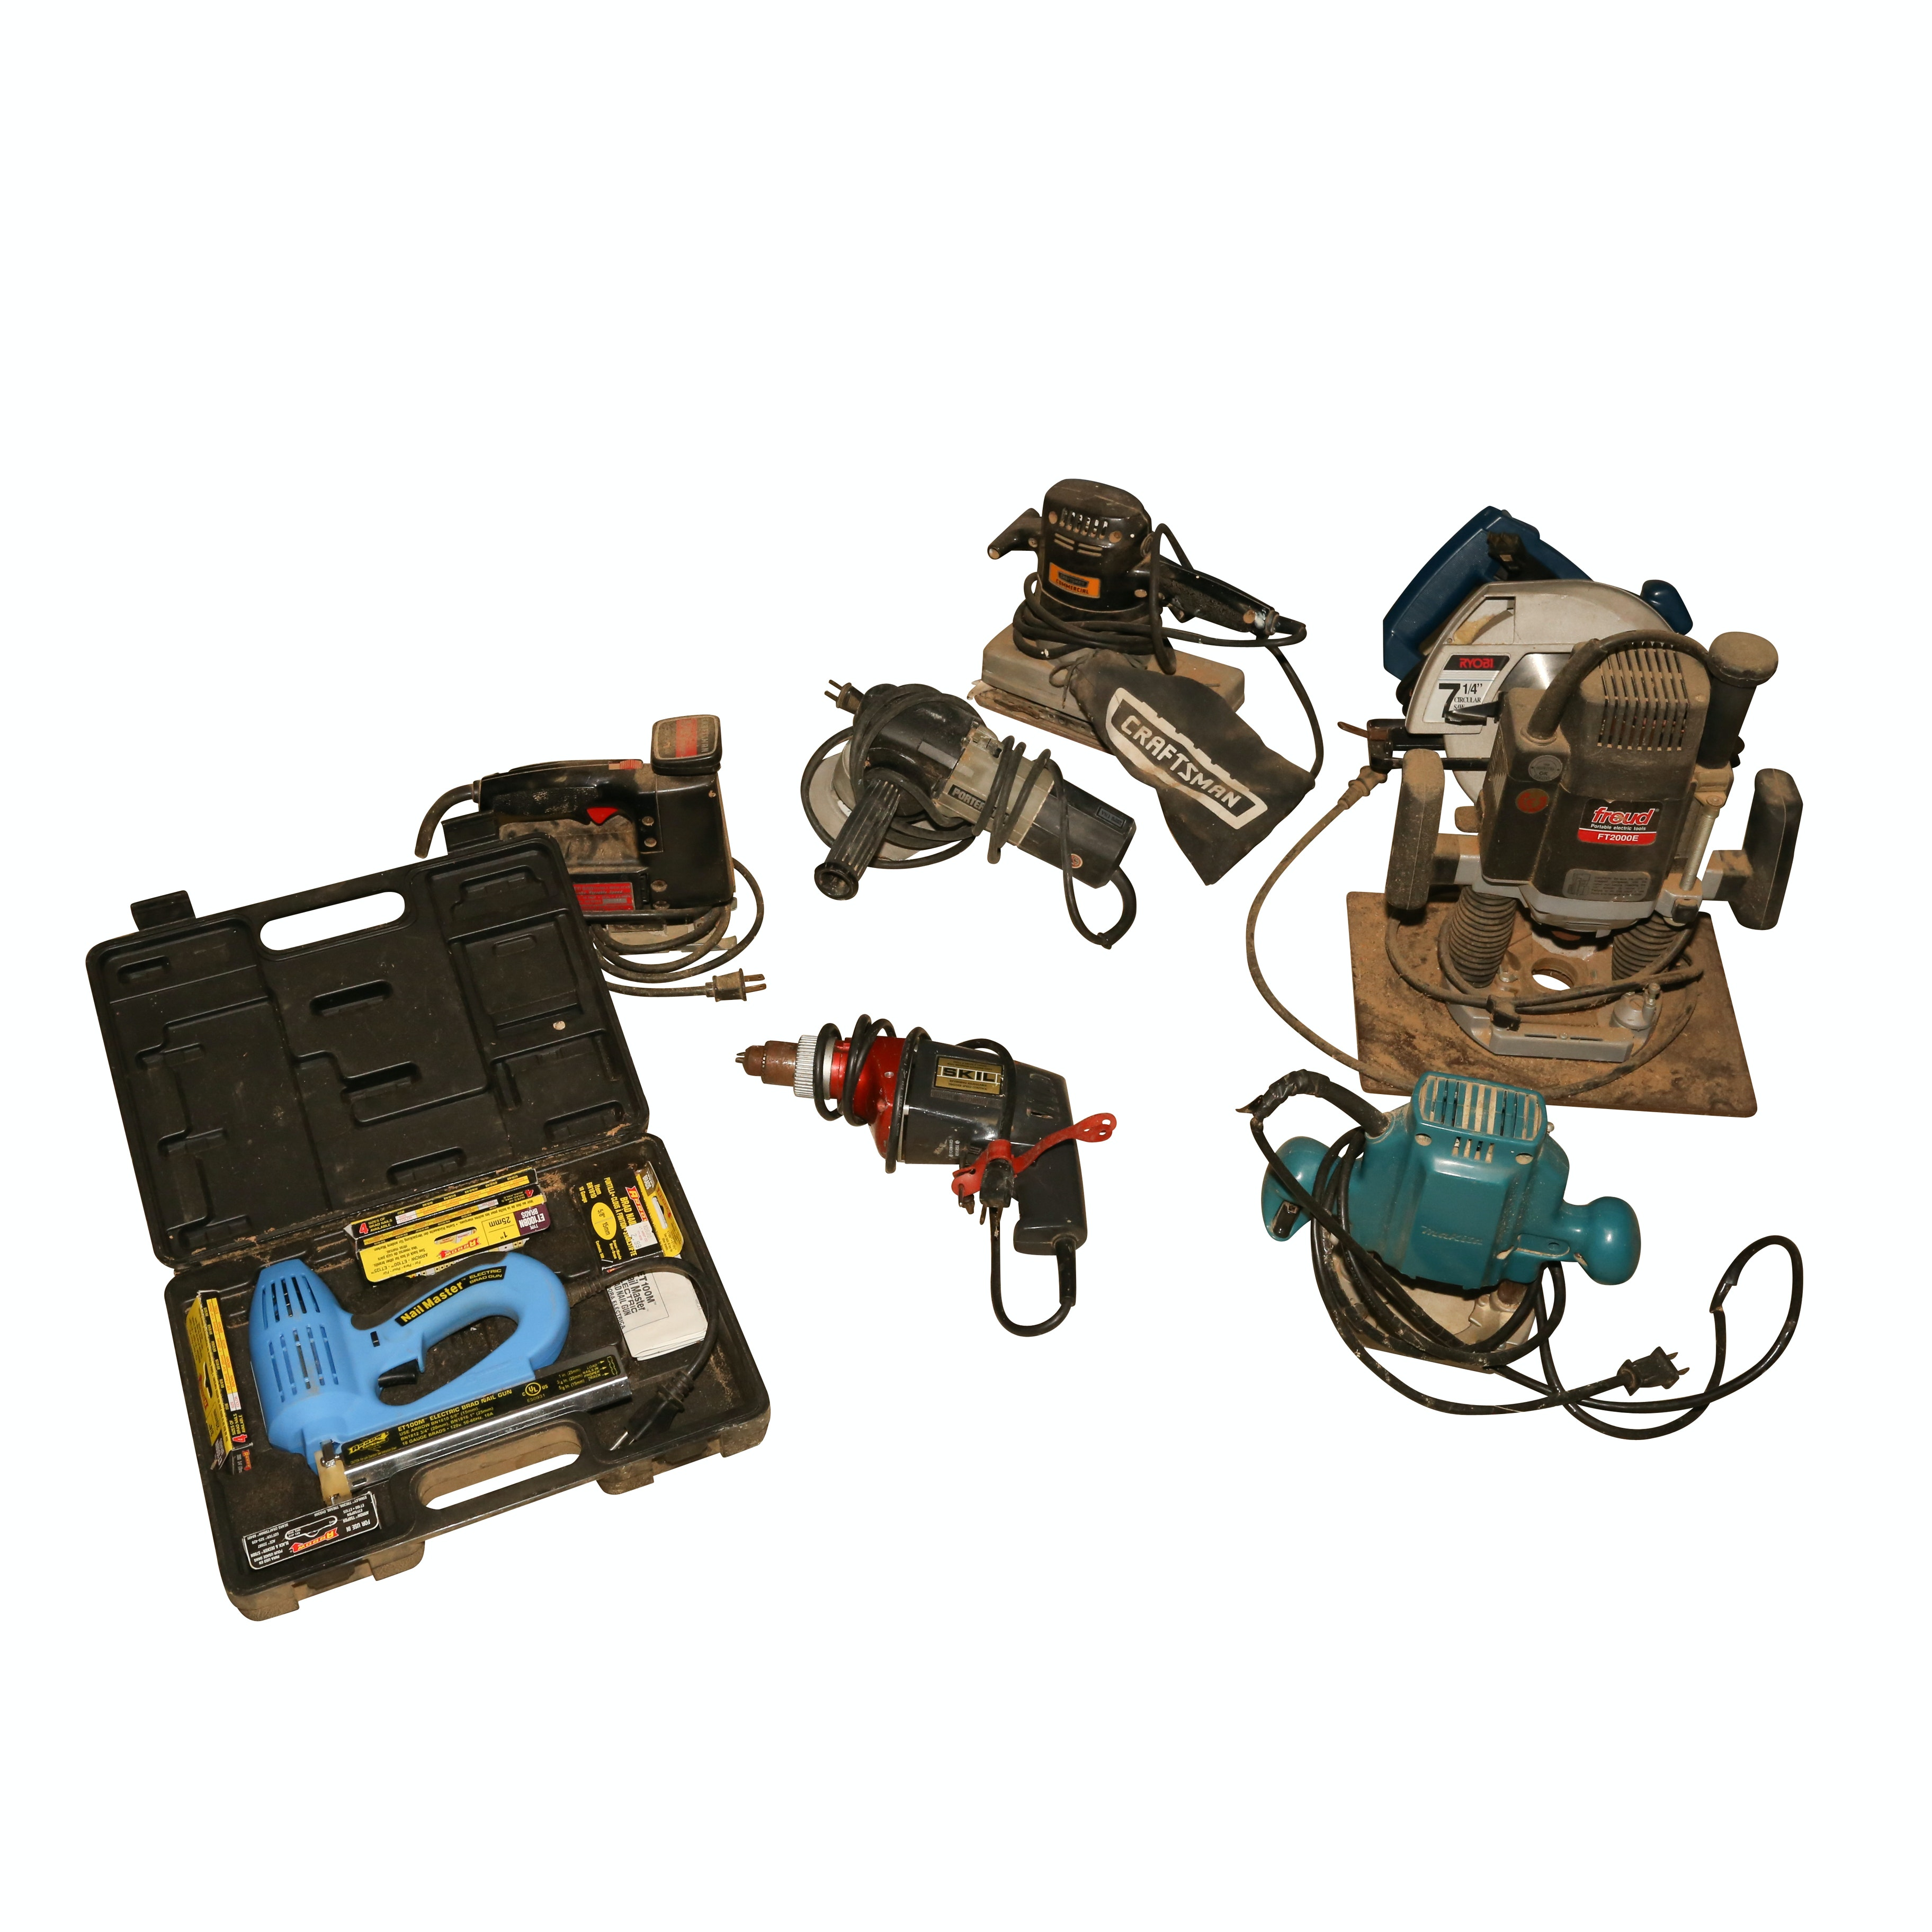 Freud Plunge Router, Arrow Electric Brad Nail Gun, and Other Power Tools